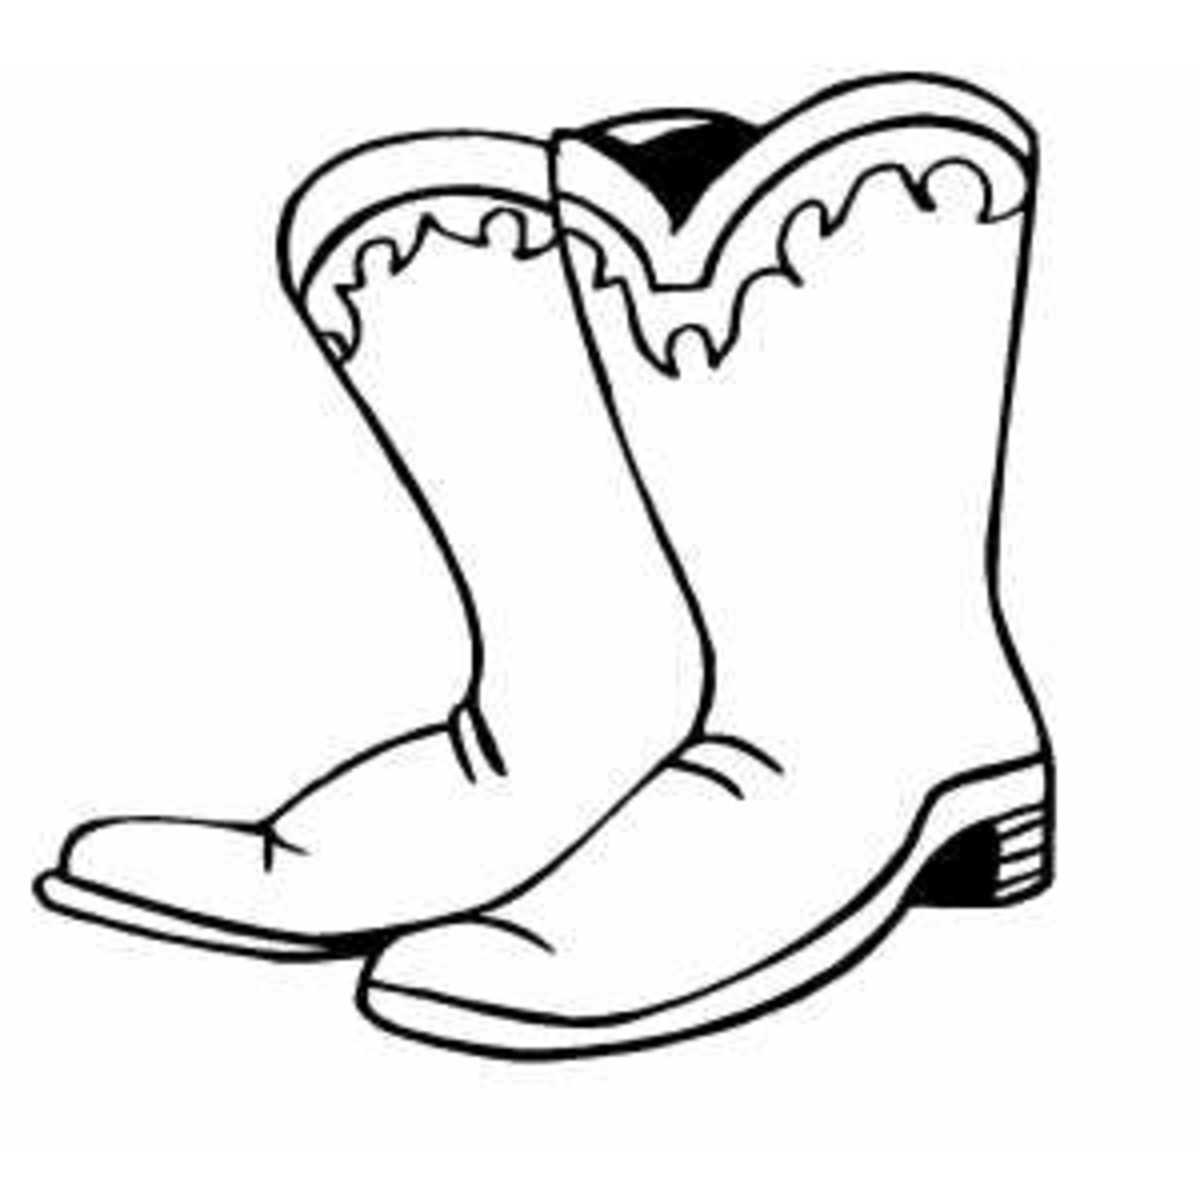 Coloring picture of western cowboy dress boots  - Western Cowboy Kids Coloring Pages and Free Colouring Pictures to Print